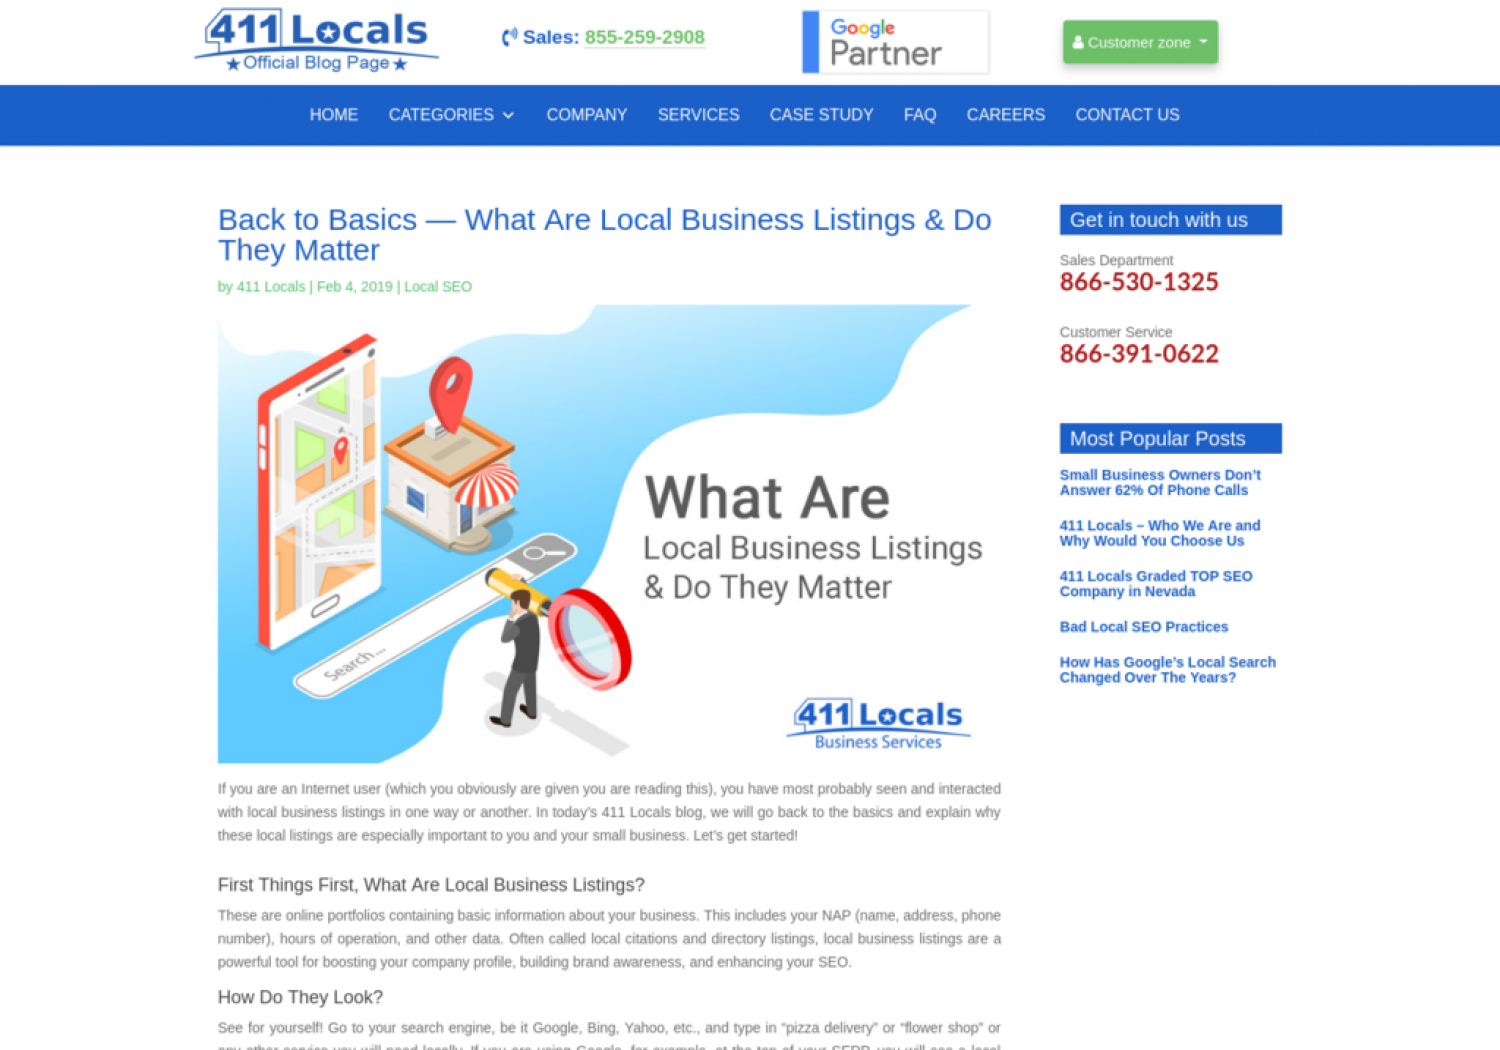 Back to Basics — What Are Local Business Listings & Do They Matter Infographic